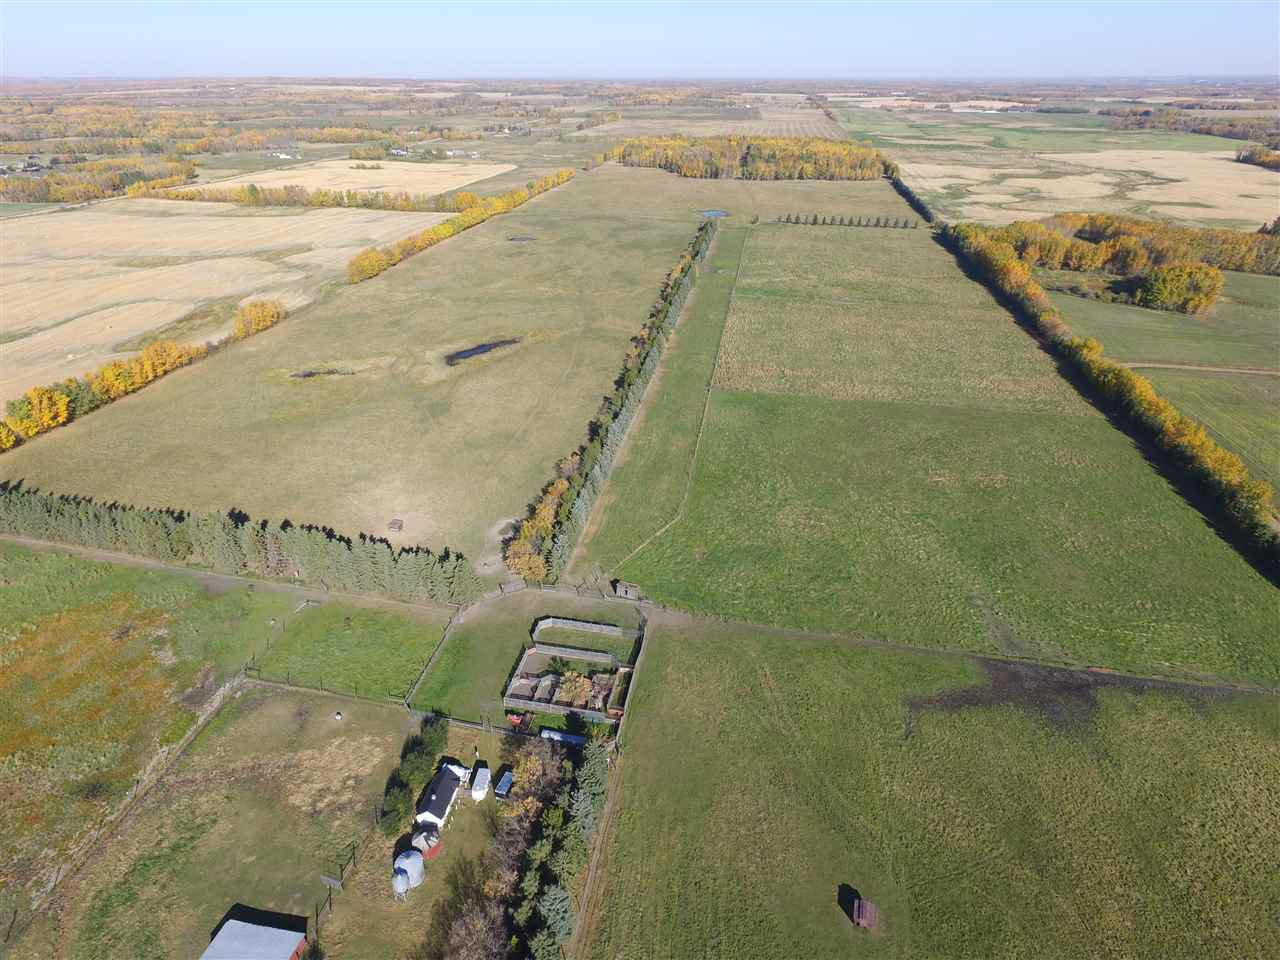 Photo 5: Photos: 273054A Hwy 13: Rural Wetaskiwin County House for sale : MLS®# E4216850